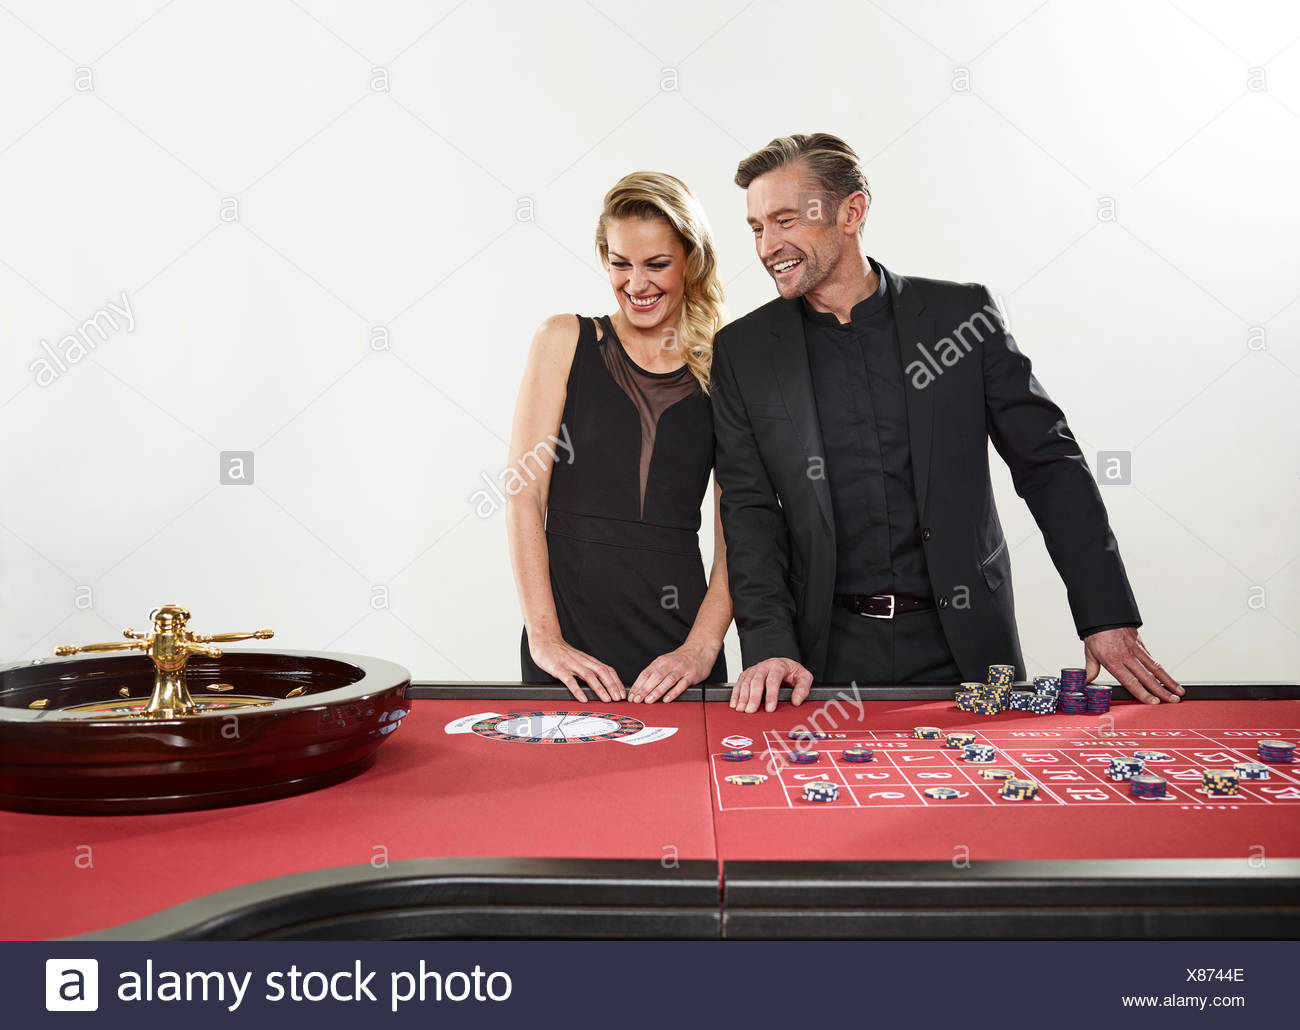 Couple playing roulette, casino, chips - Stock Image